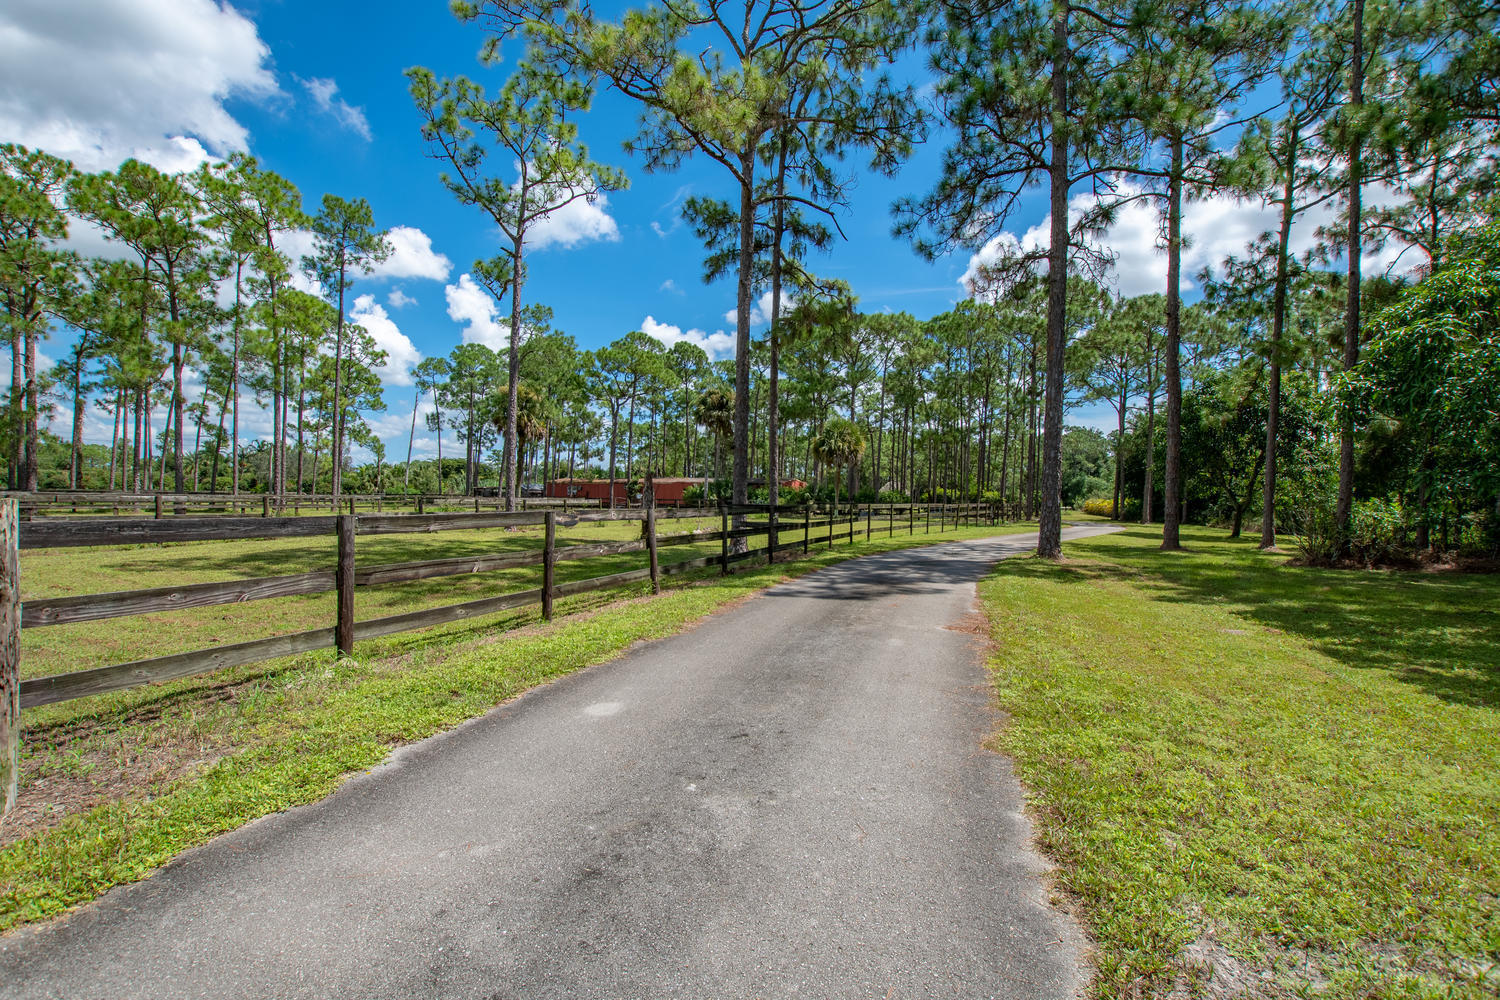 2140 C Road, Loxahatchee Groves, Florida 33470, ,2 BathroomsBathrooms,Mobile/manufactured,For Sale,C,RX-10627392